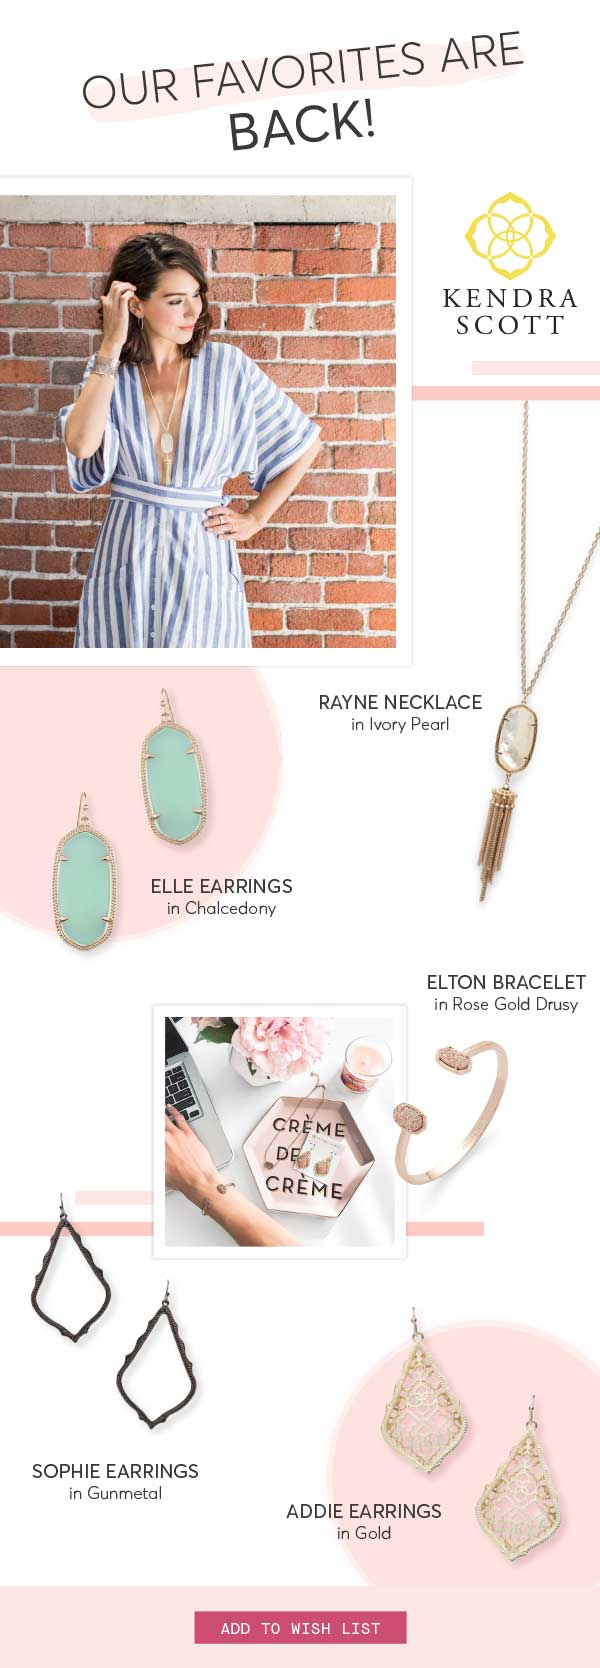 july-kendra-scott.jpg